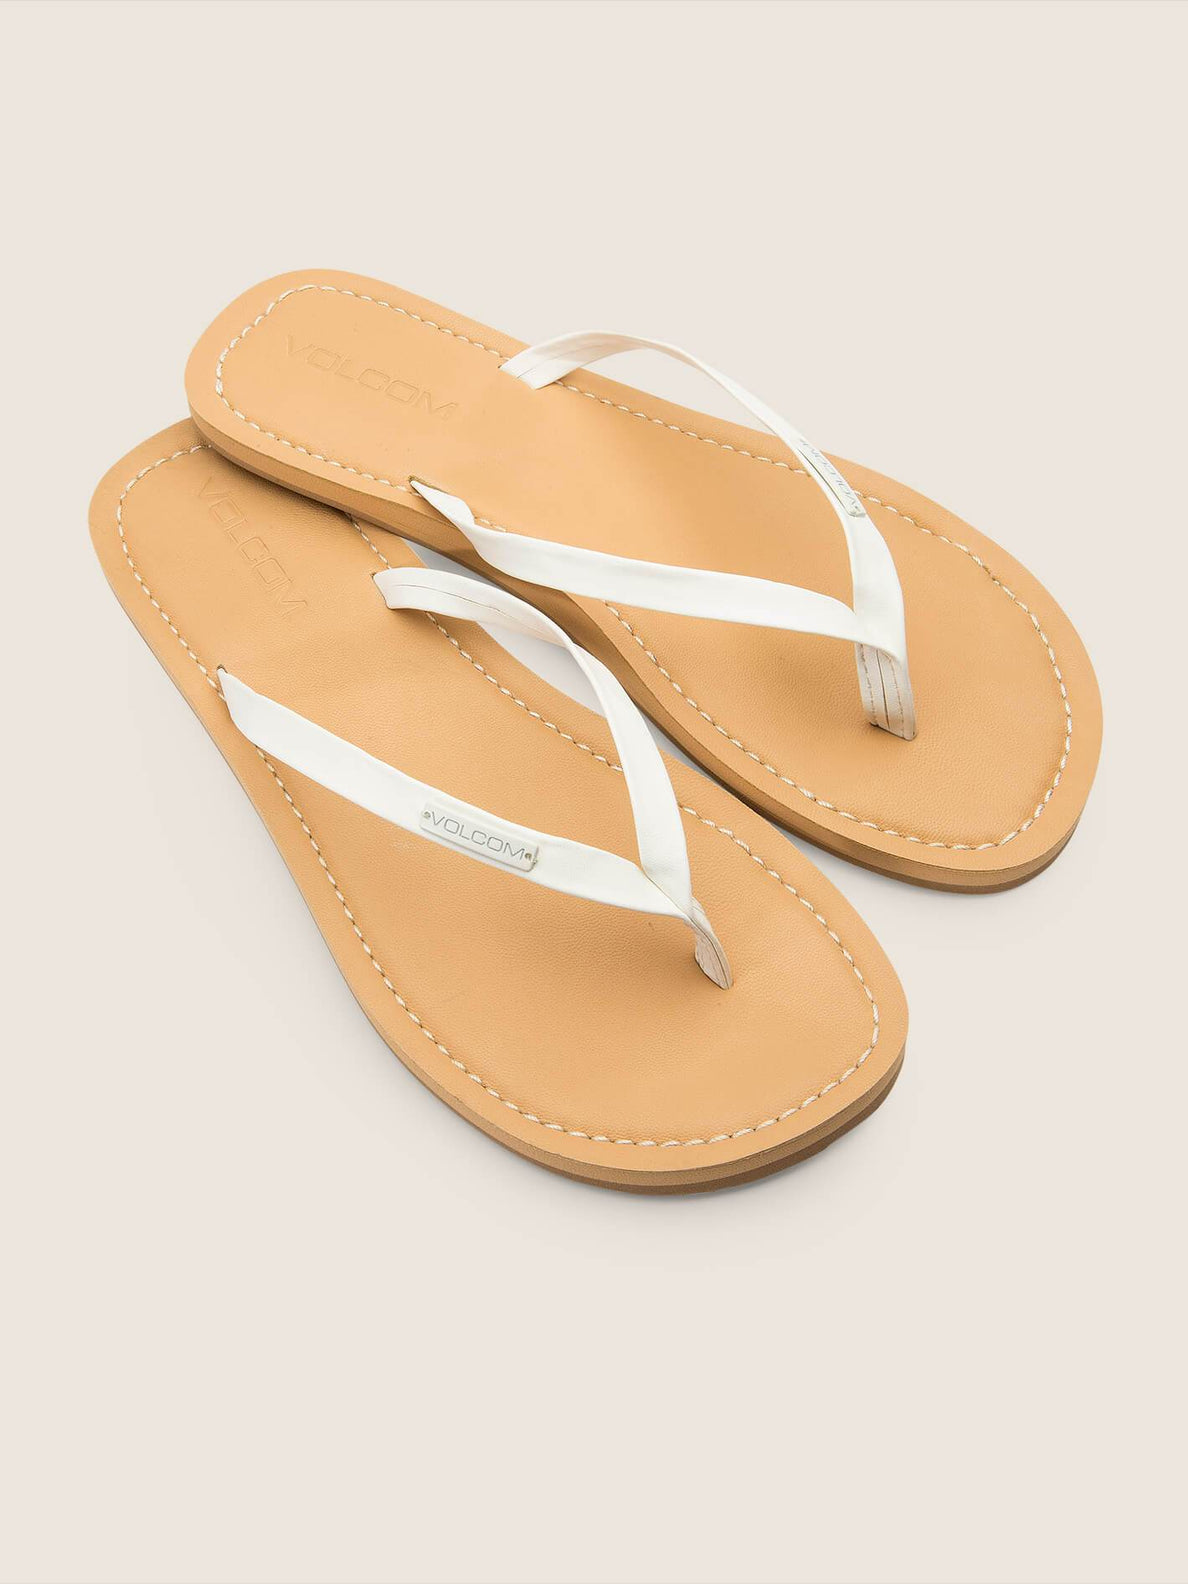 Lagos Sandals In White, Front View